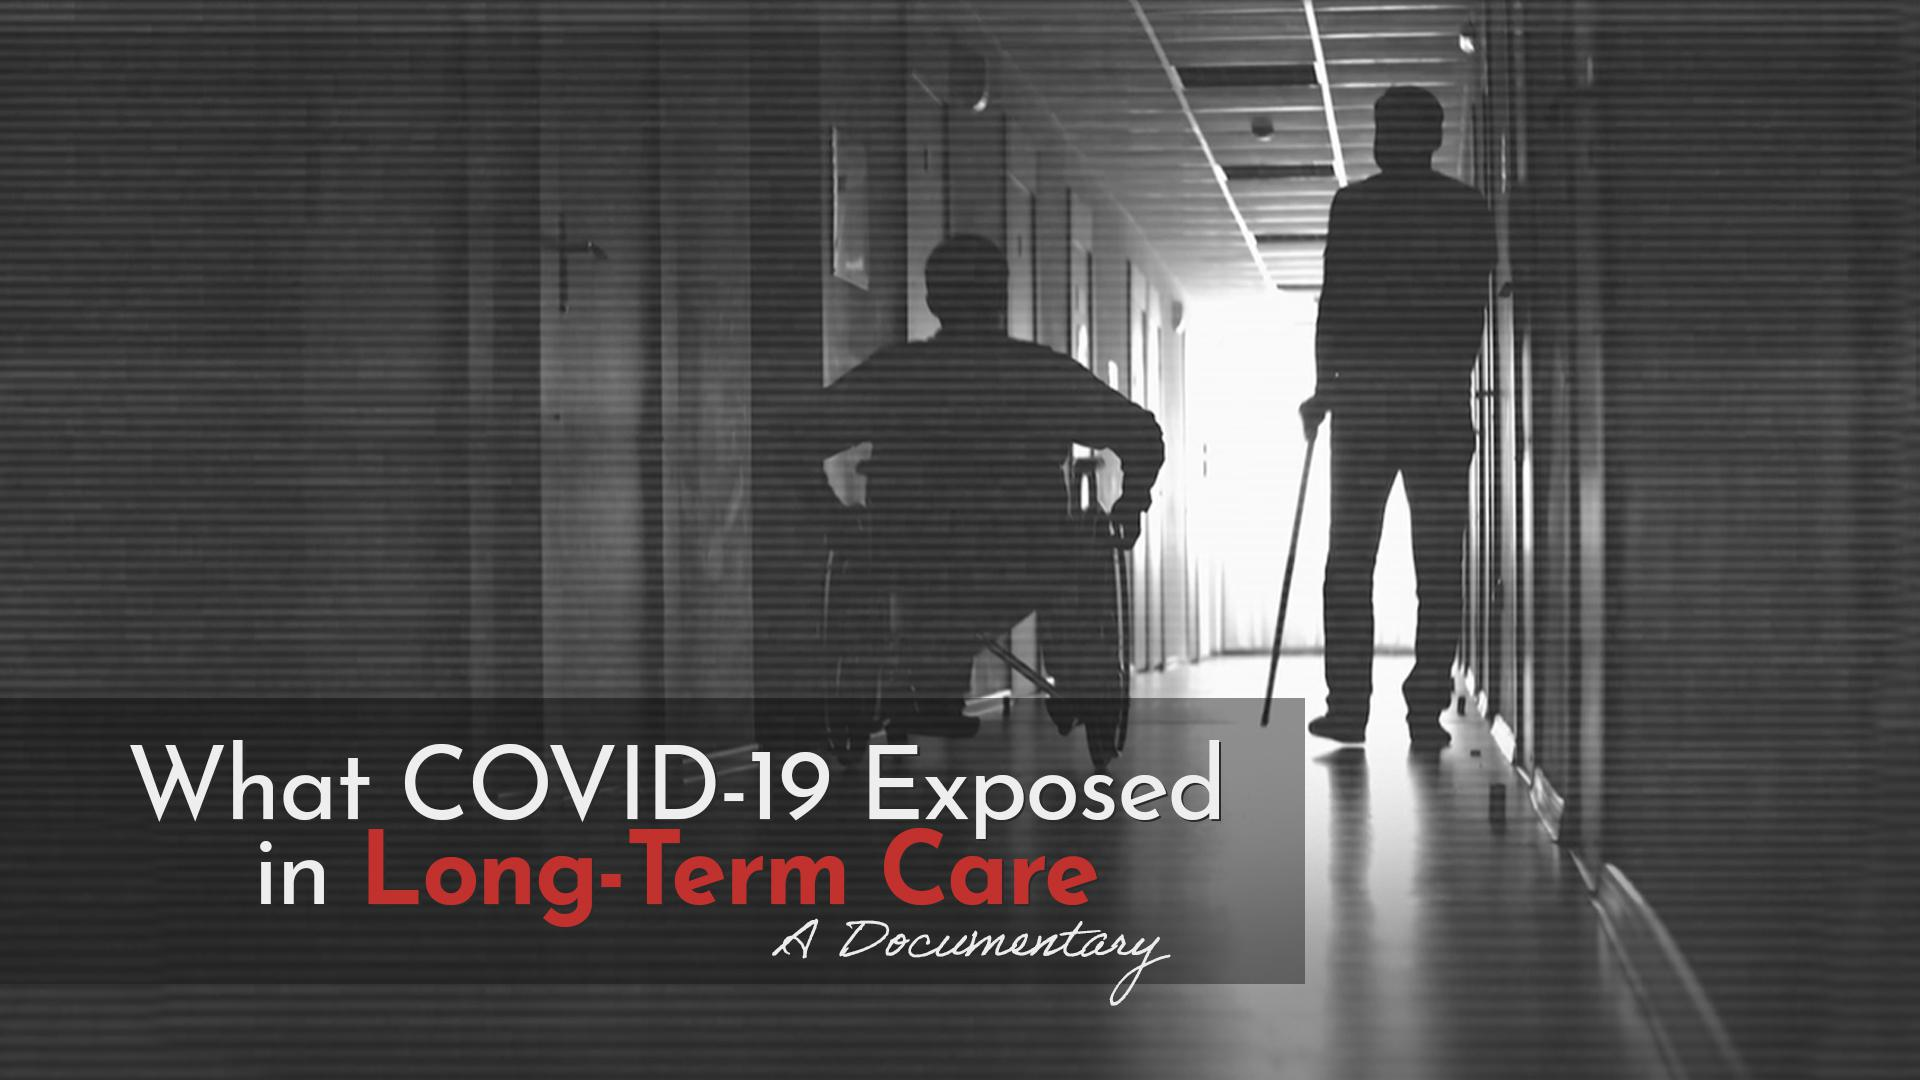 What COVID-19 Exposed in Long-Term Care